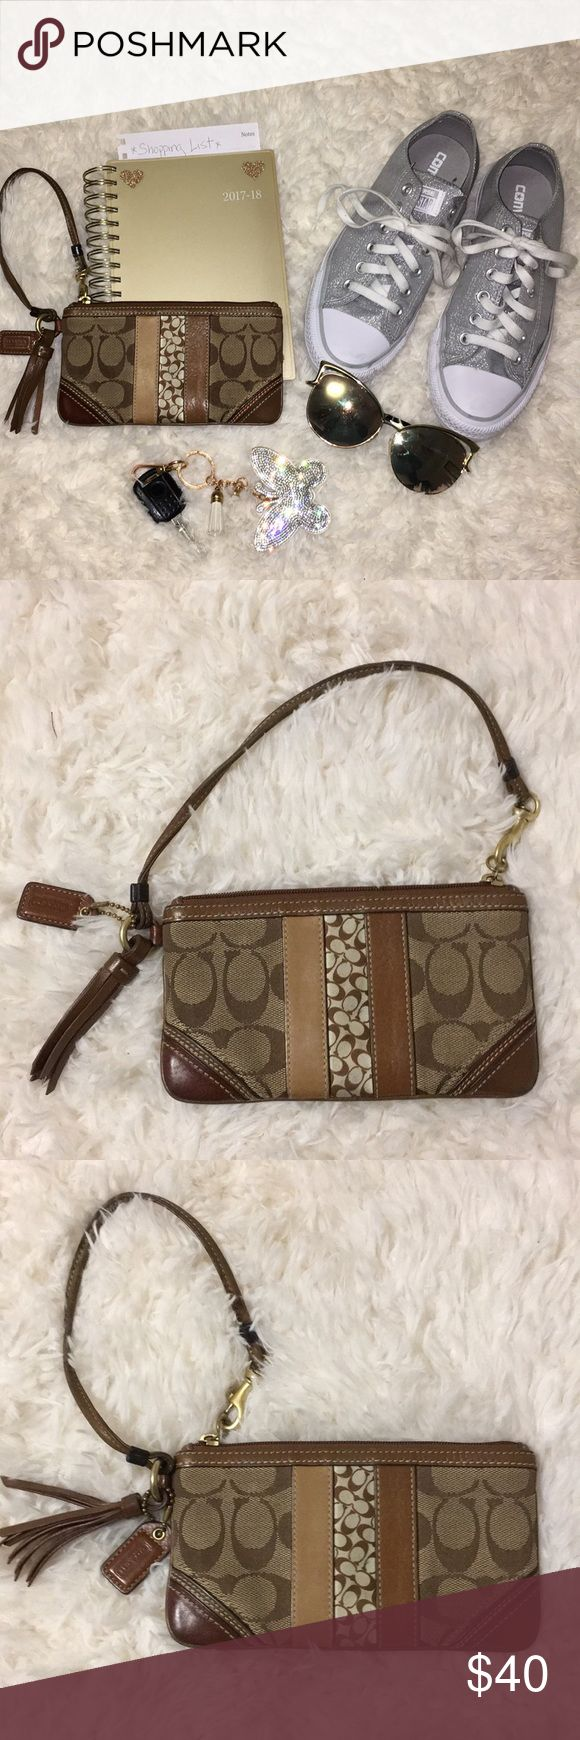 Vintage Coach Wristlet Monogram Coach wristlet sturdy in great shape just not big enough for my phone. Well loved could use a steam clean. Coach Bags Clutches & Wristlets